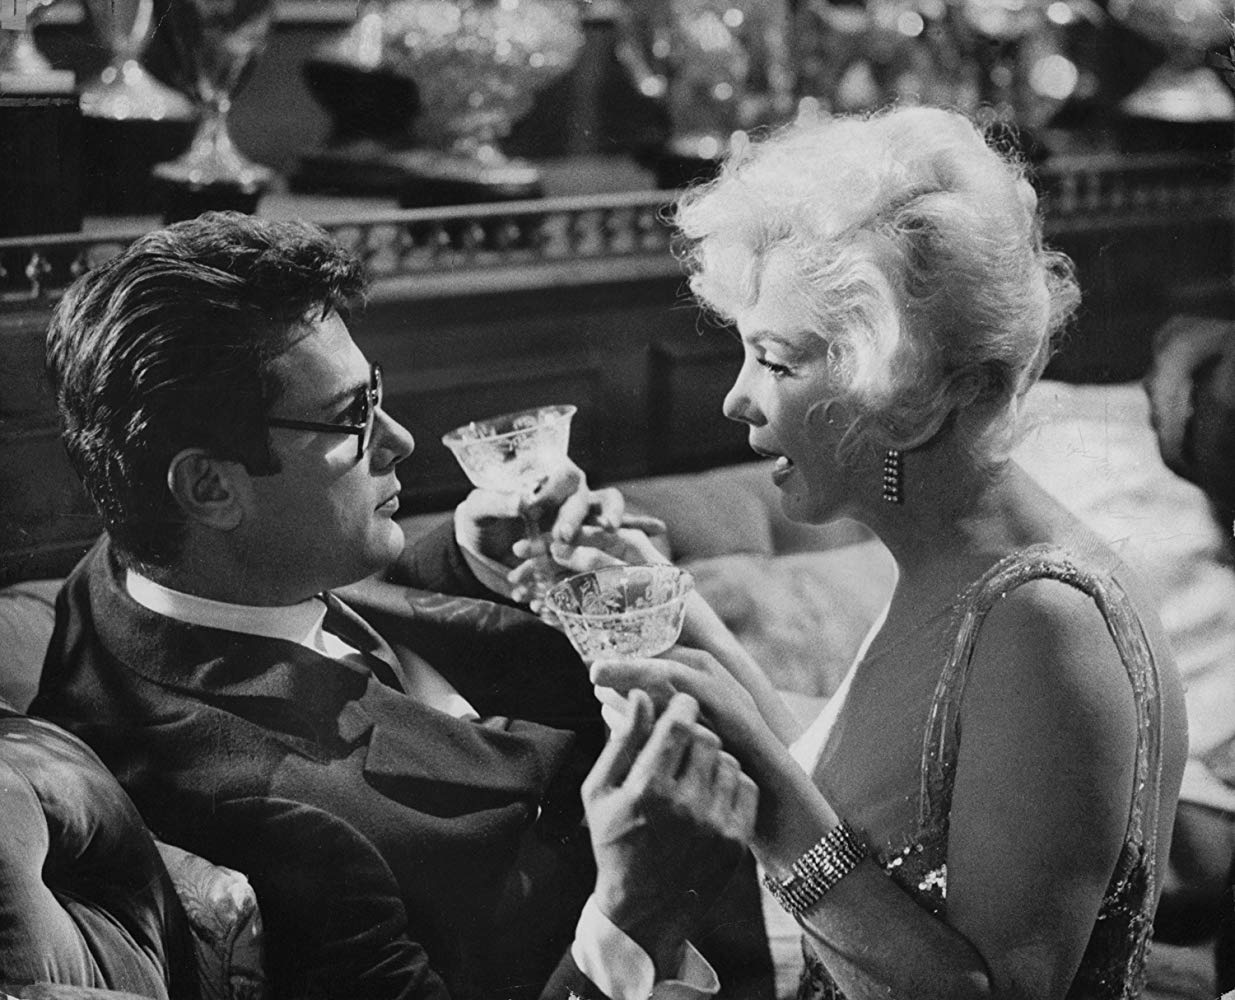 Tony Curtis and Marilyn Monroe in SOME LIKE IT HOT (1959)